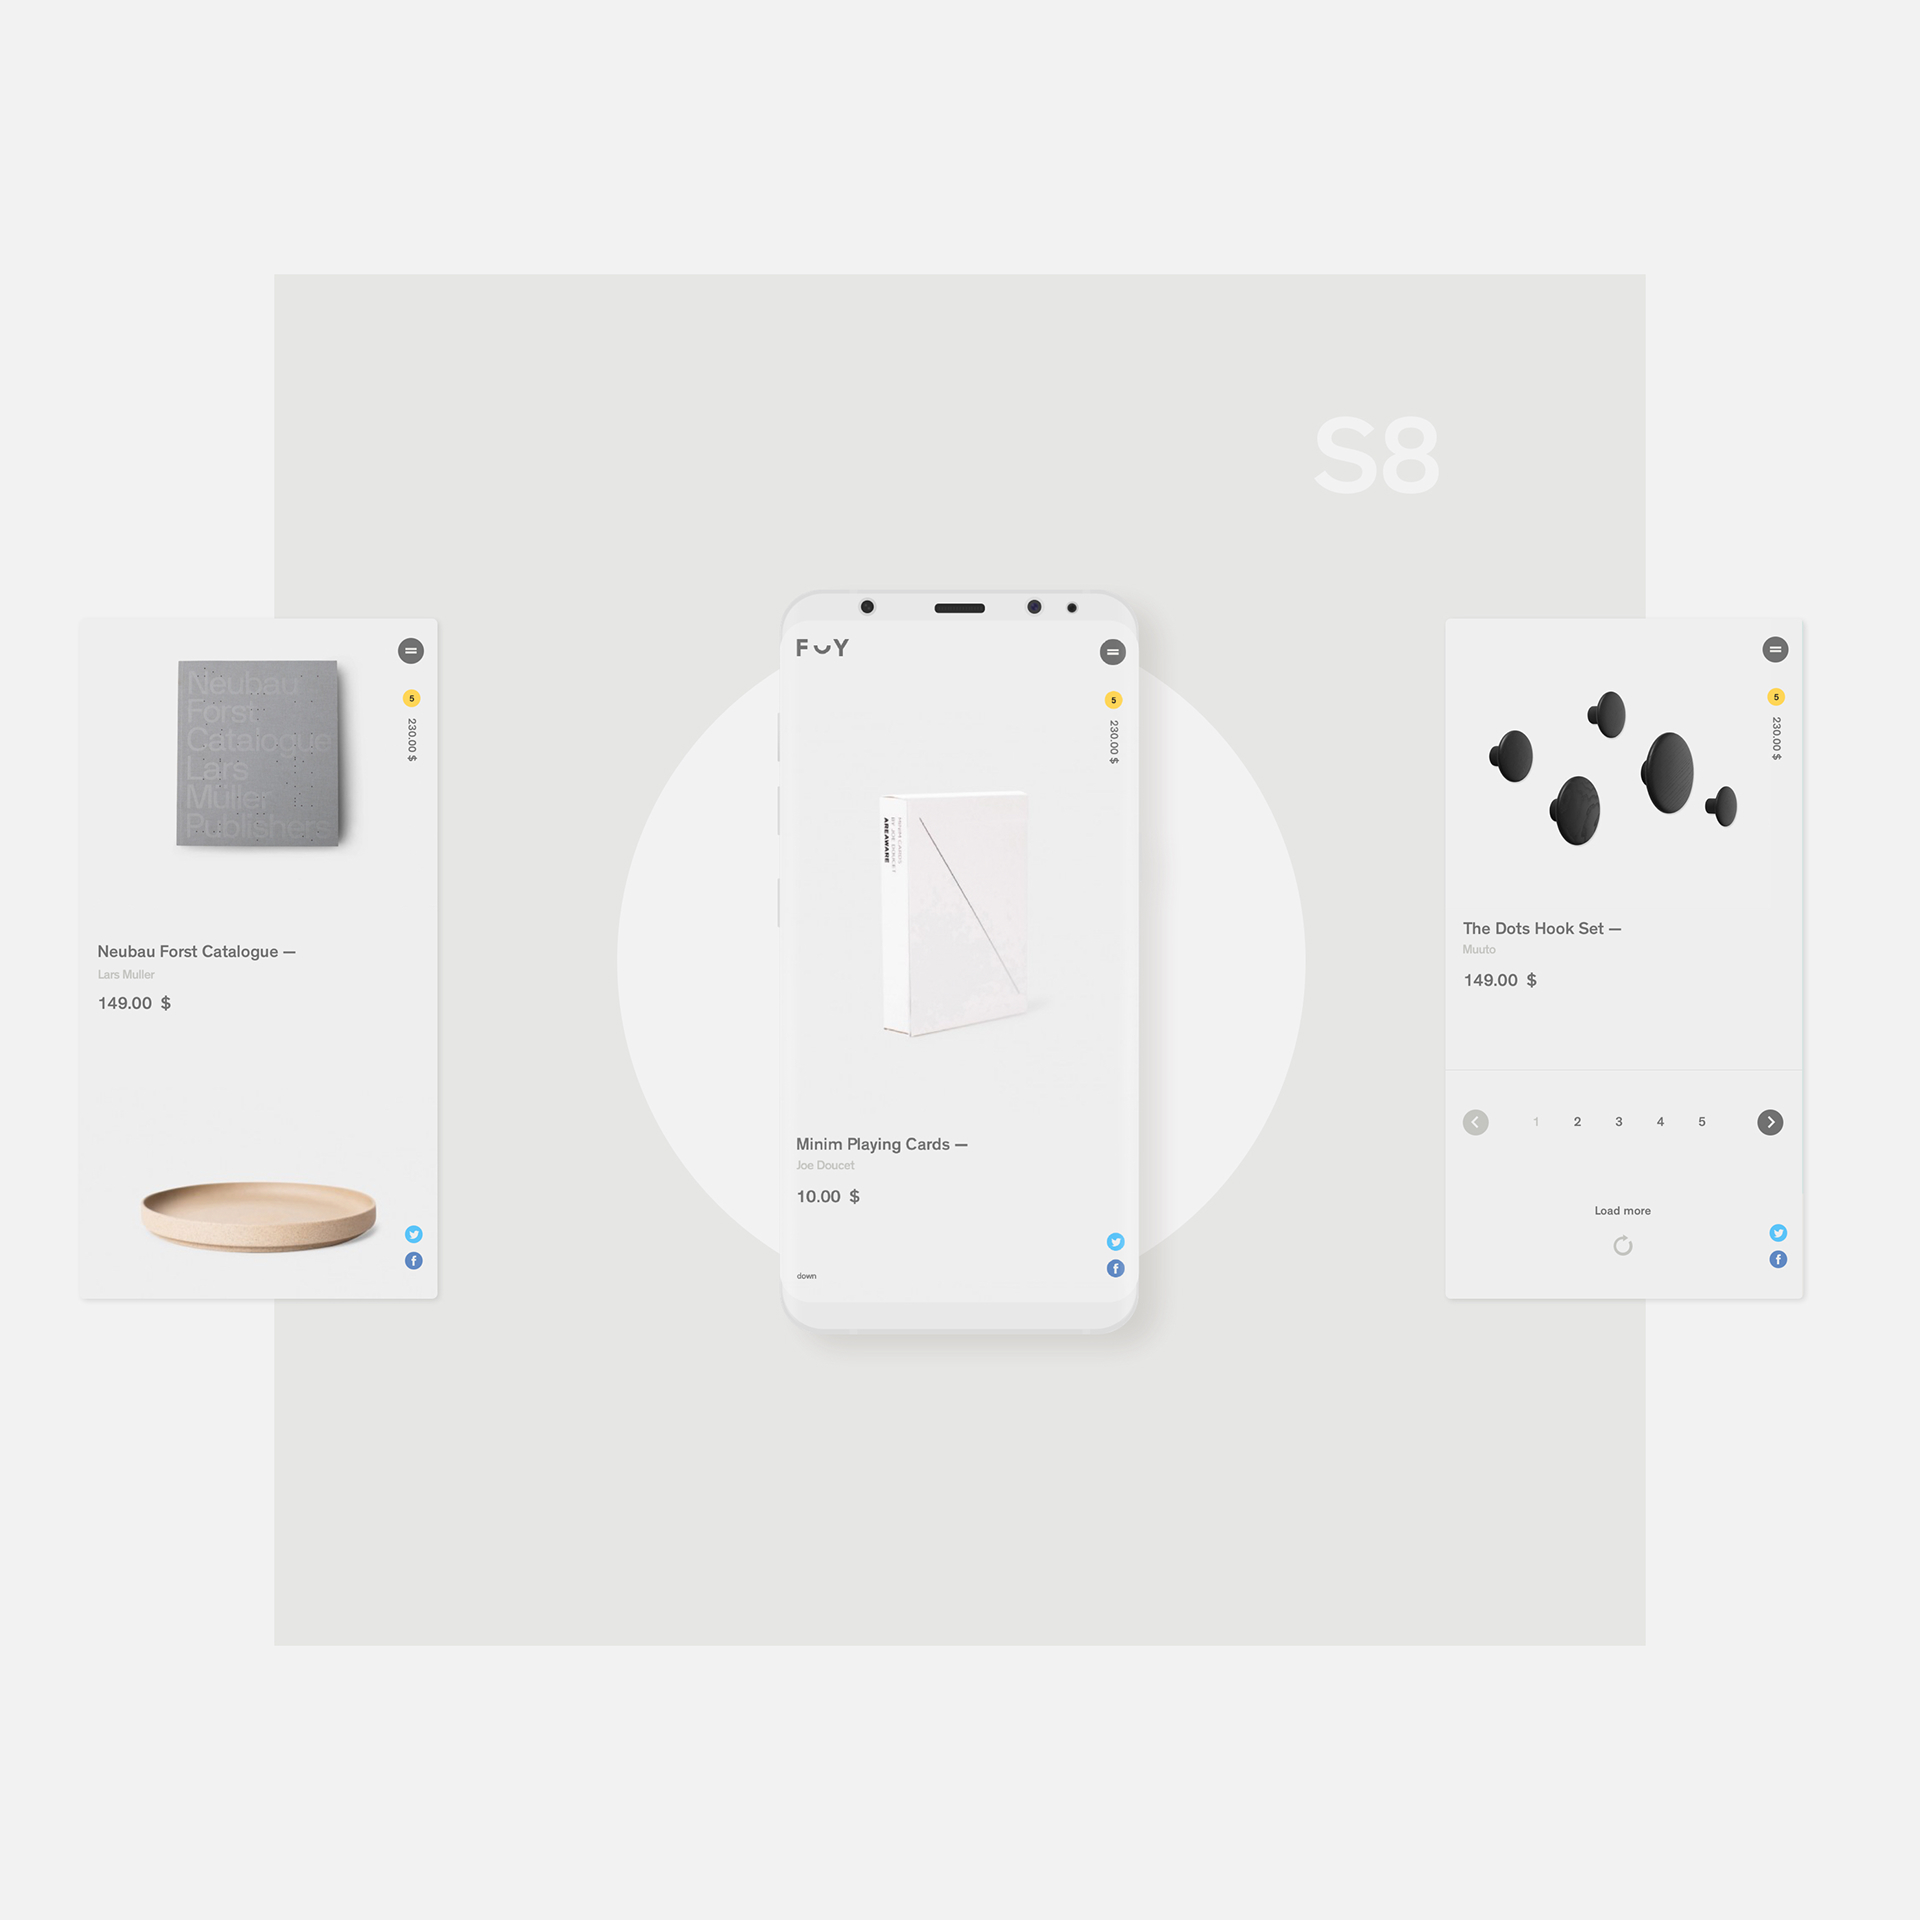 Website Design & UX: Formerly Yes Store Concept